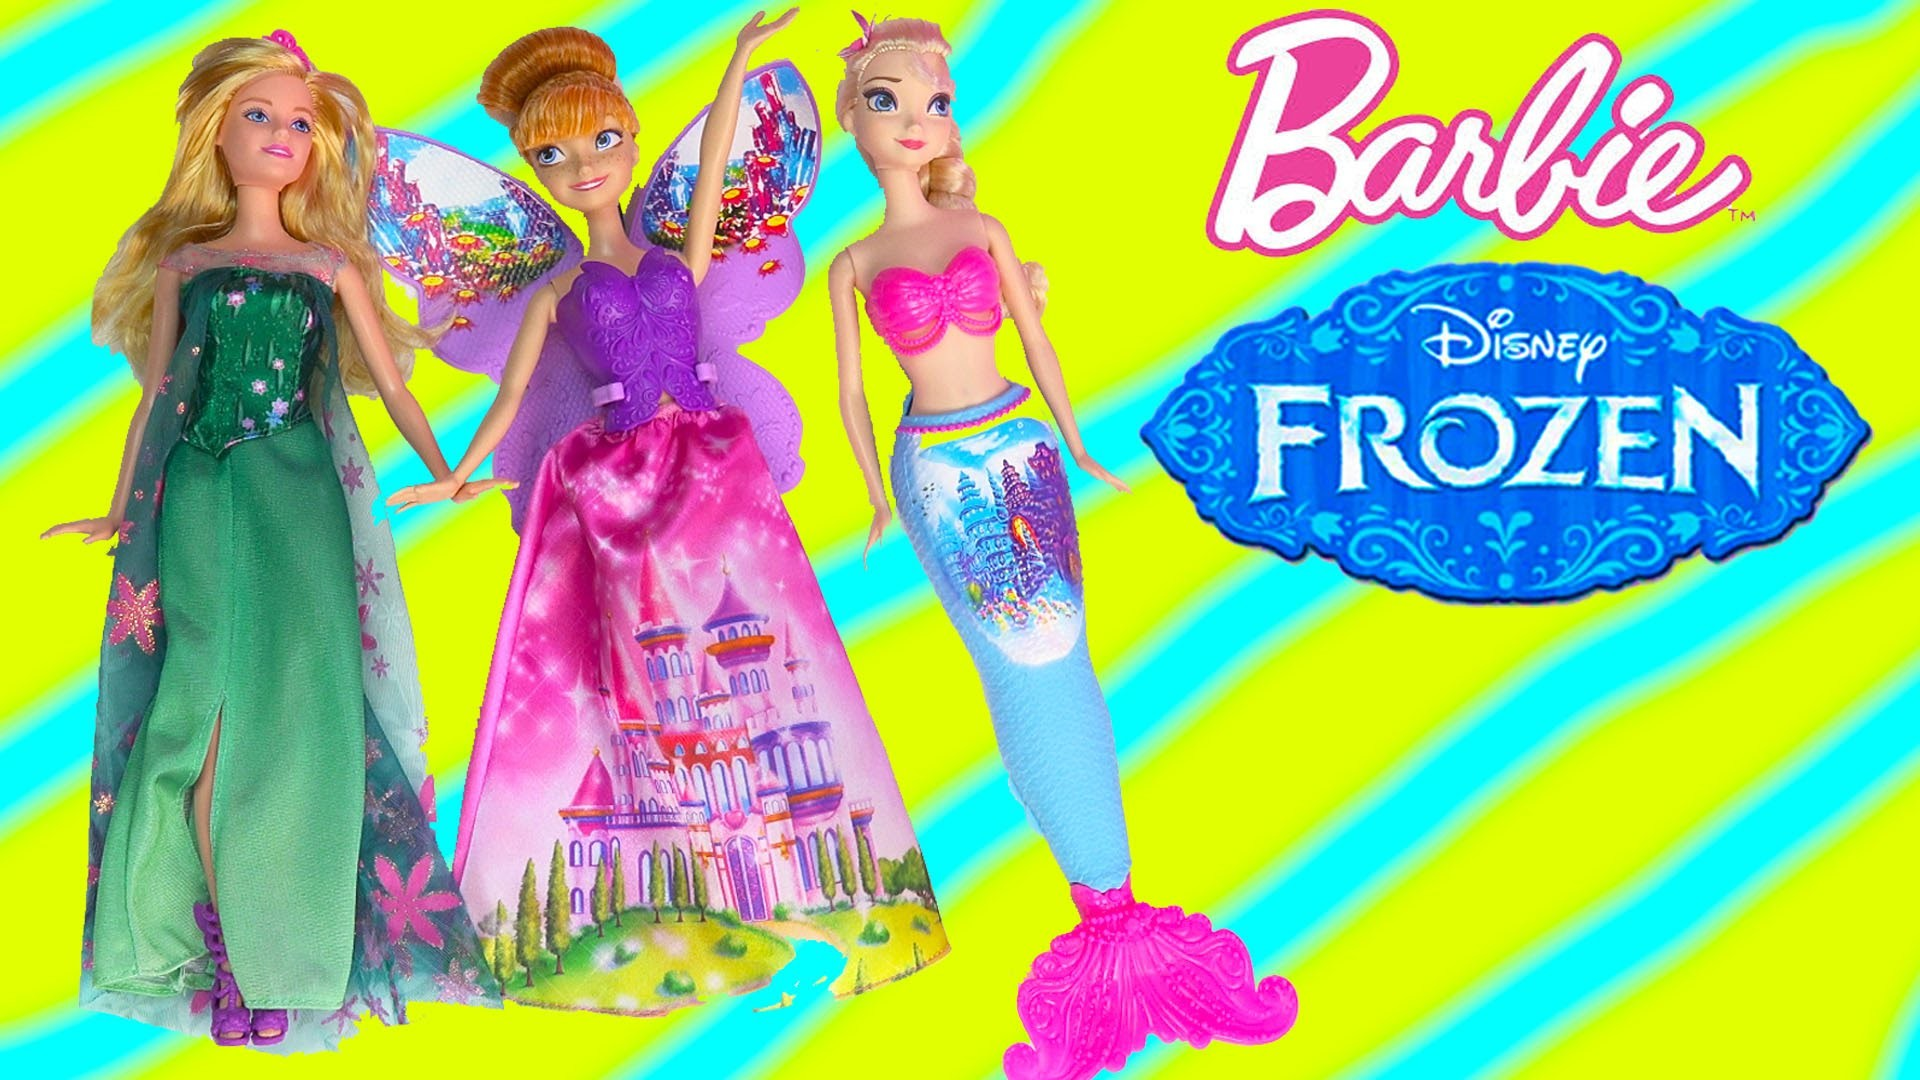 Queen Elsa Barbie Fairytale Dress Up Doll Playset Mermaid Fairy Princess Anna Frozen Fever Unboxing